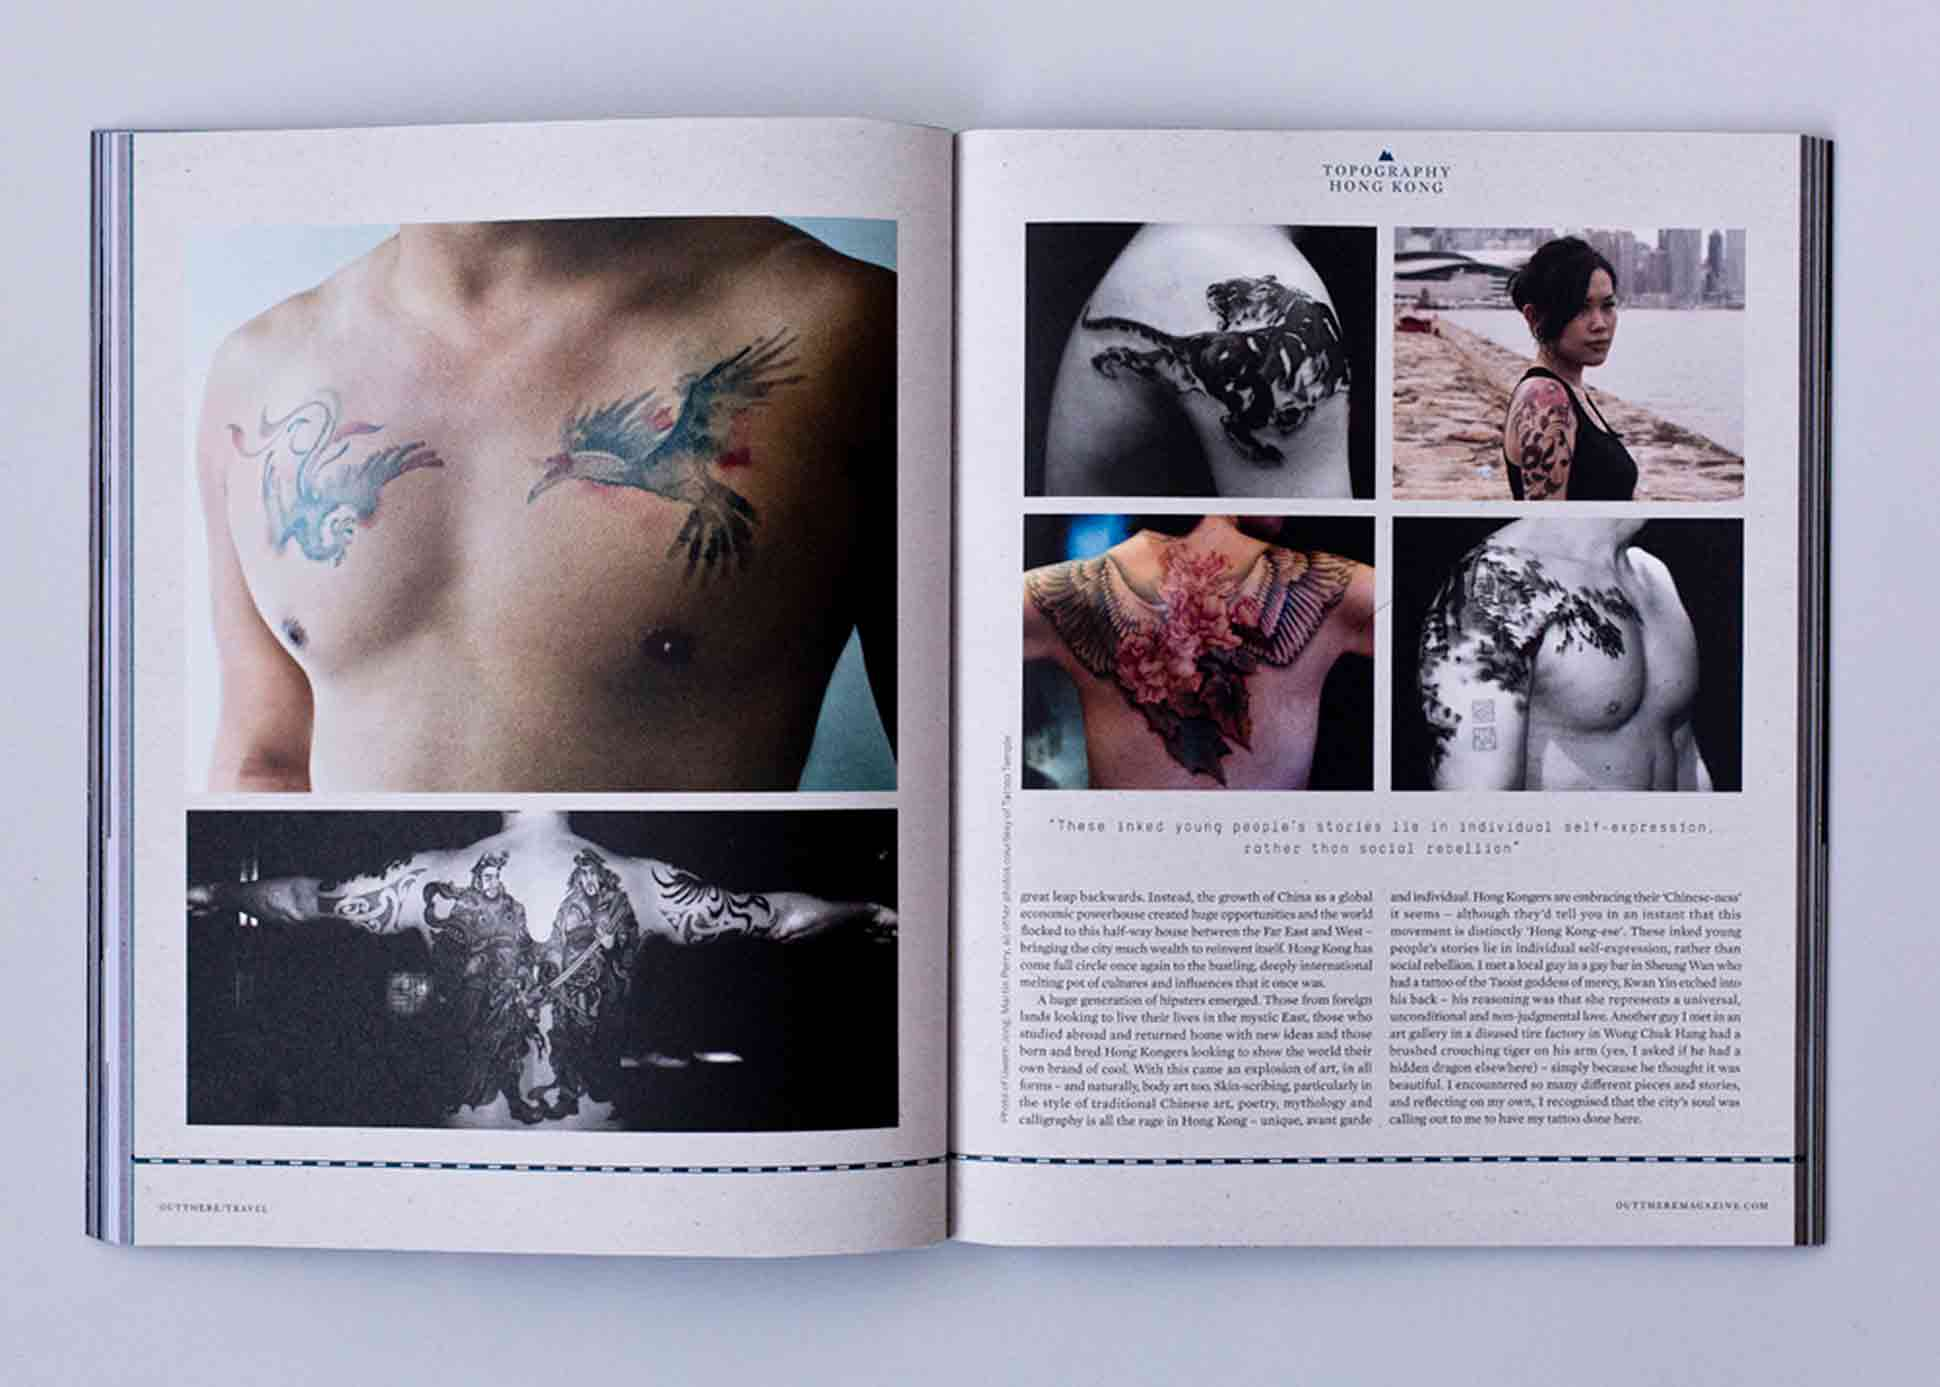 OutThere/Travel Great British Issue preview - Hong Kong Tattoo